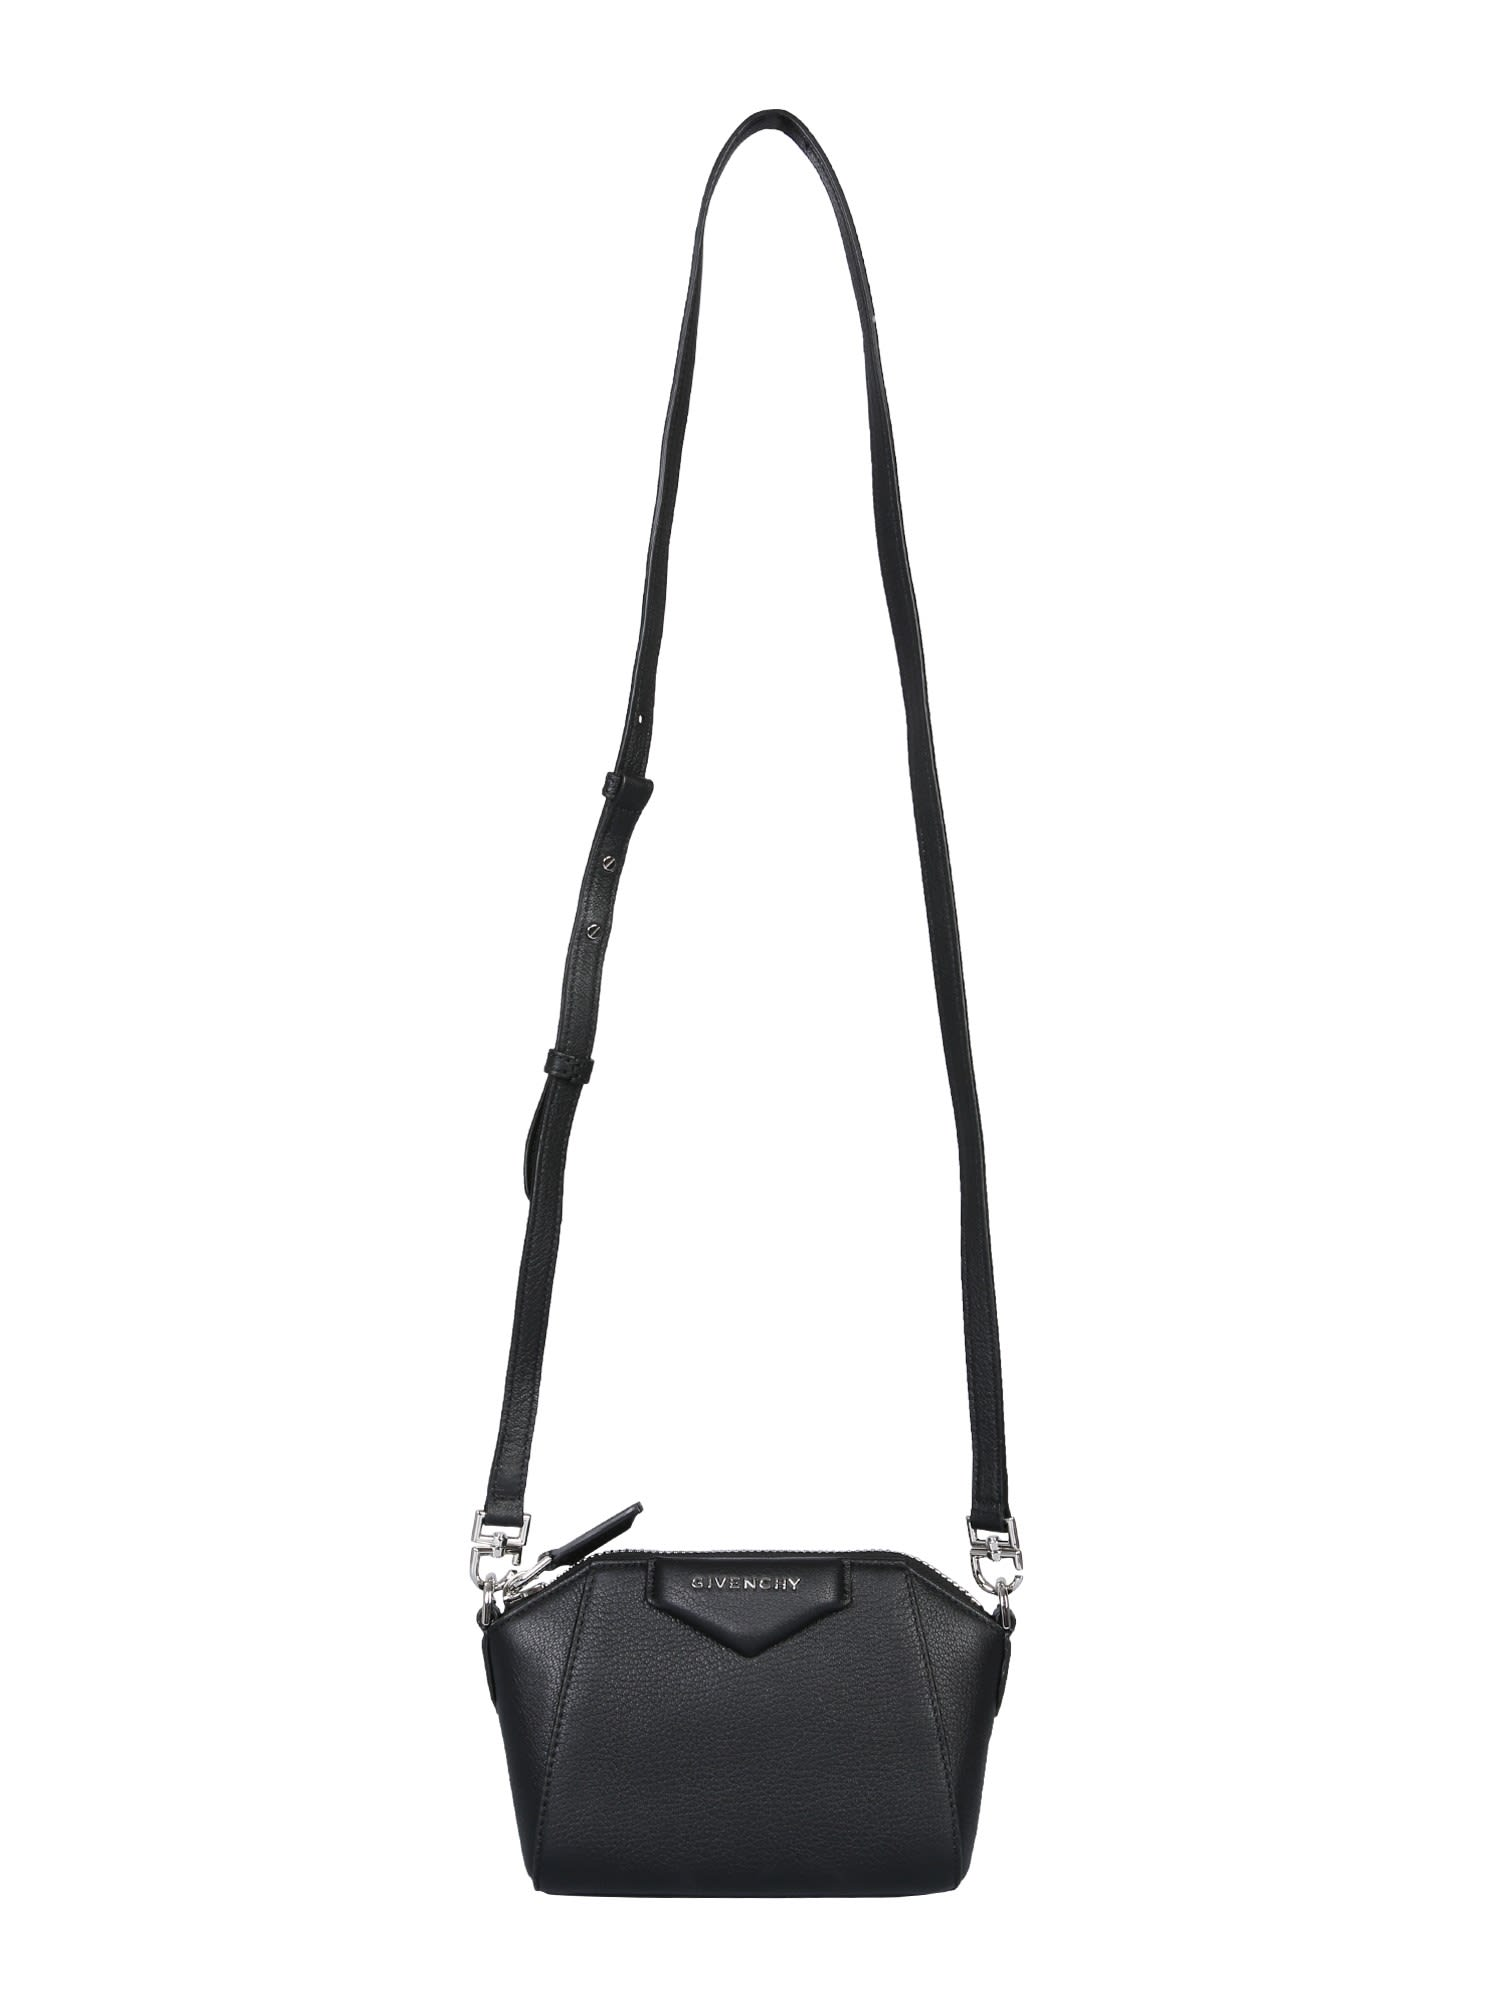 Givenchy Bags ANTIGONA BAG